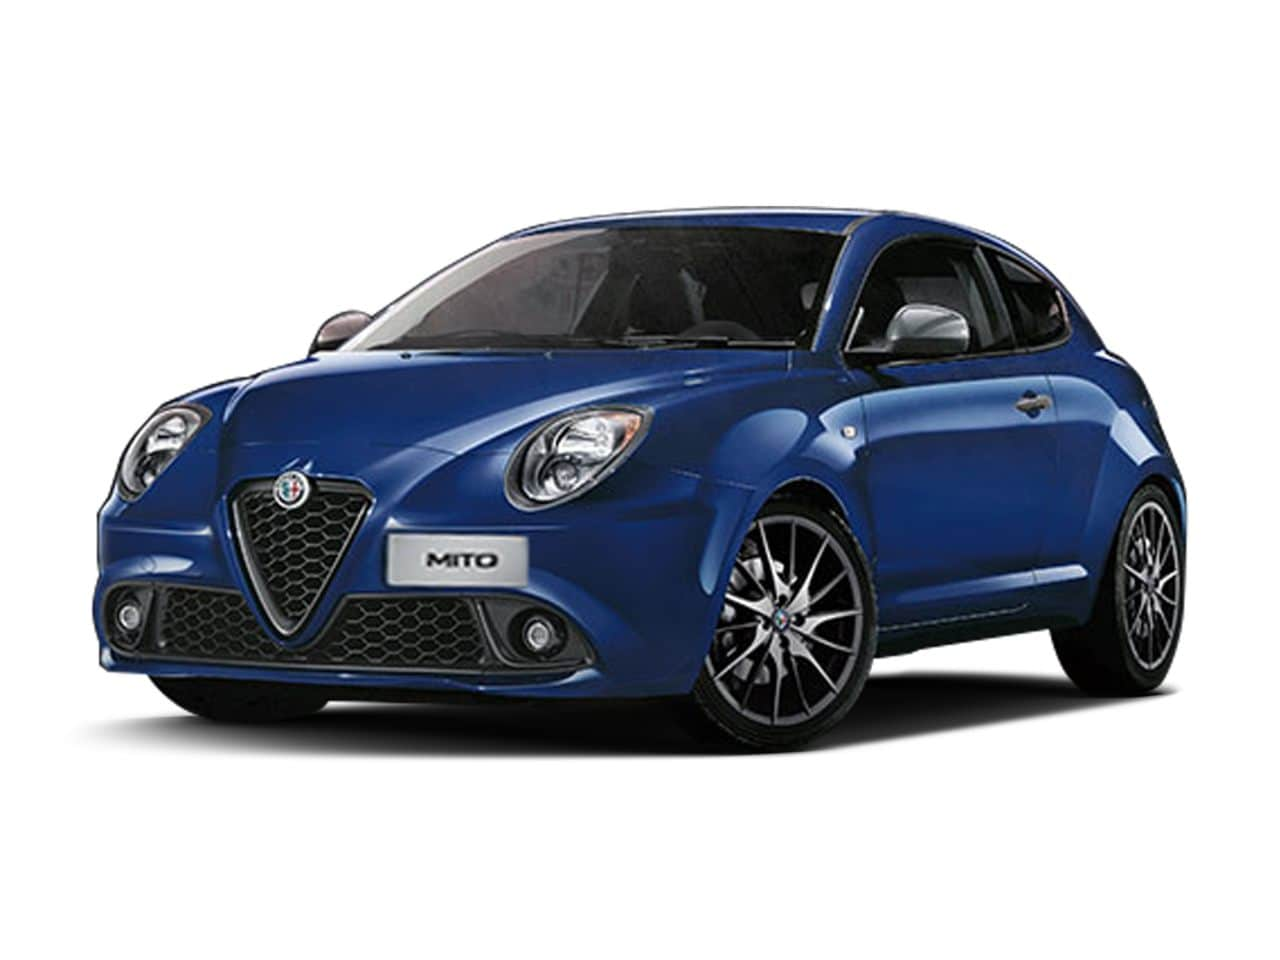 hatchback para alfa romeo mito 2017 puebla. Black Bedroom Furniture Sets. Home Design Ideas